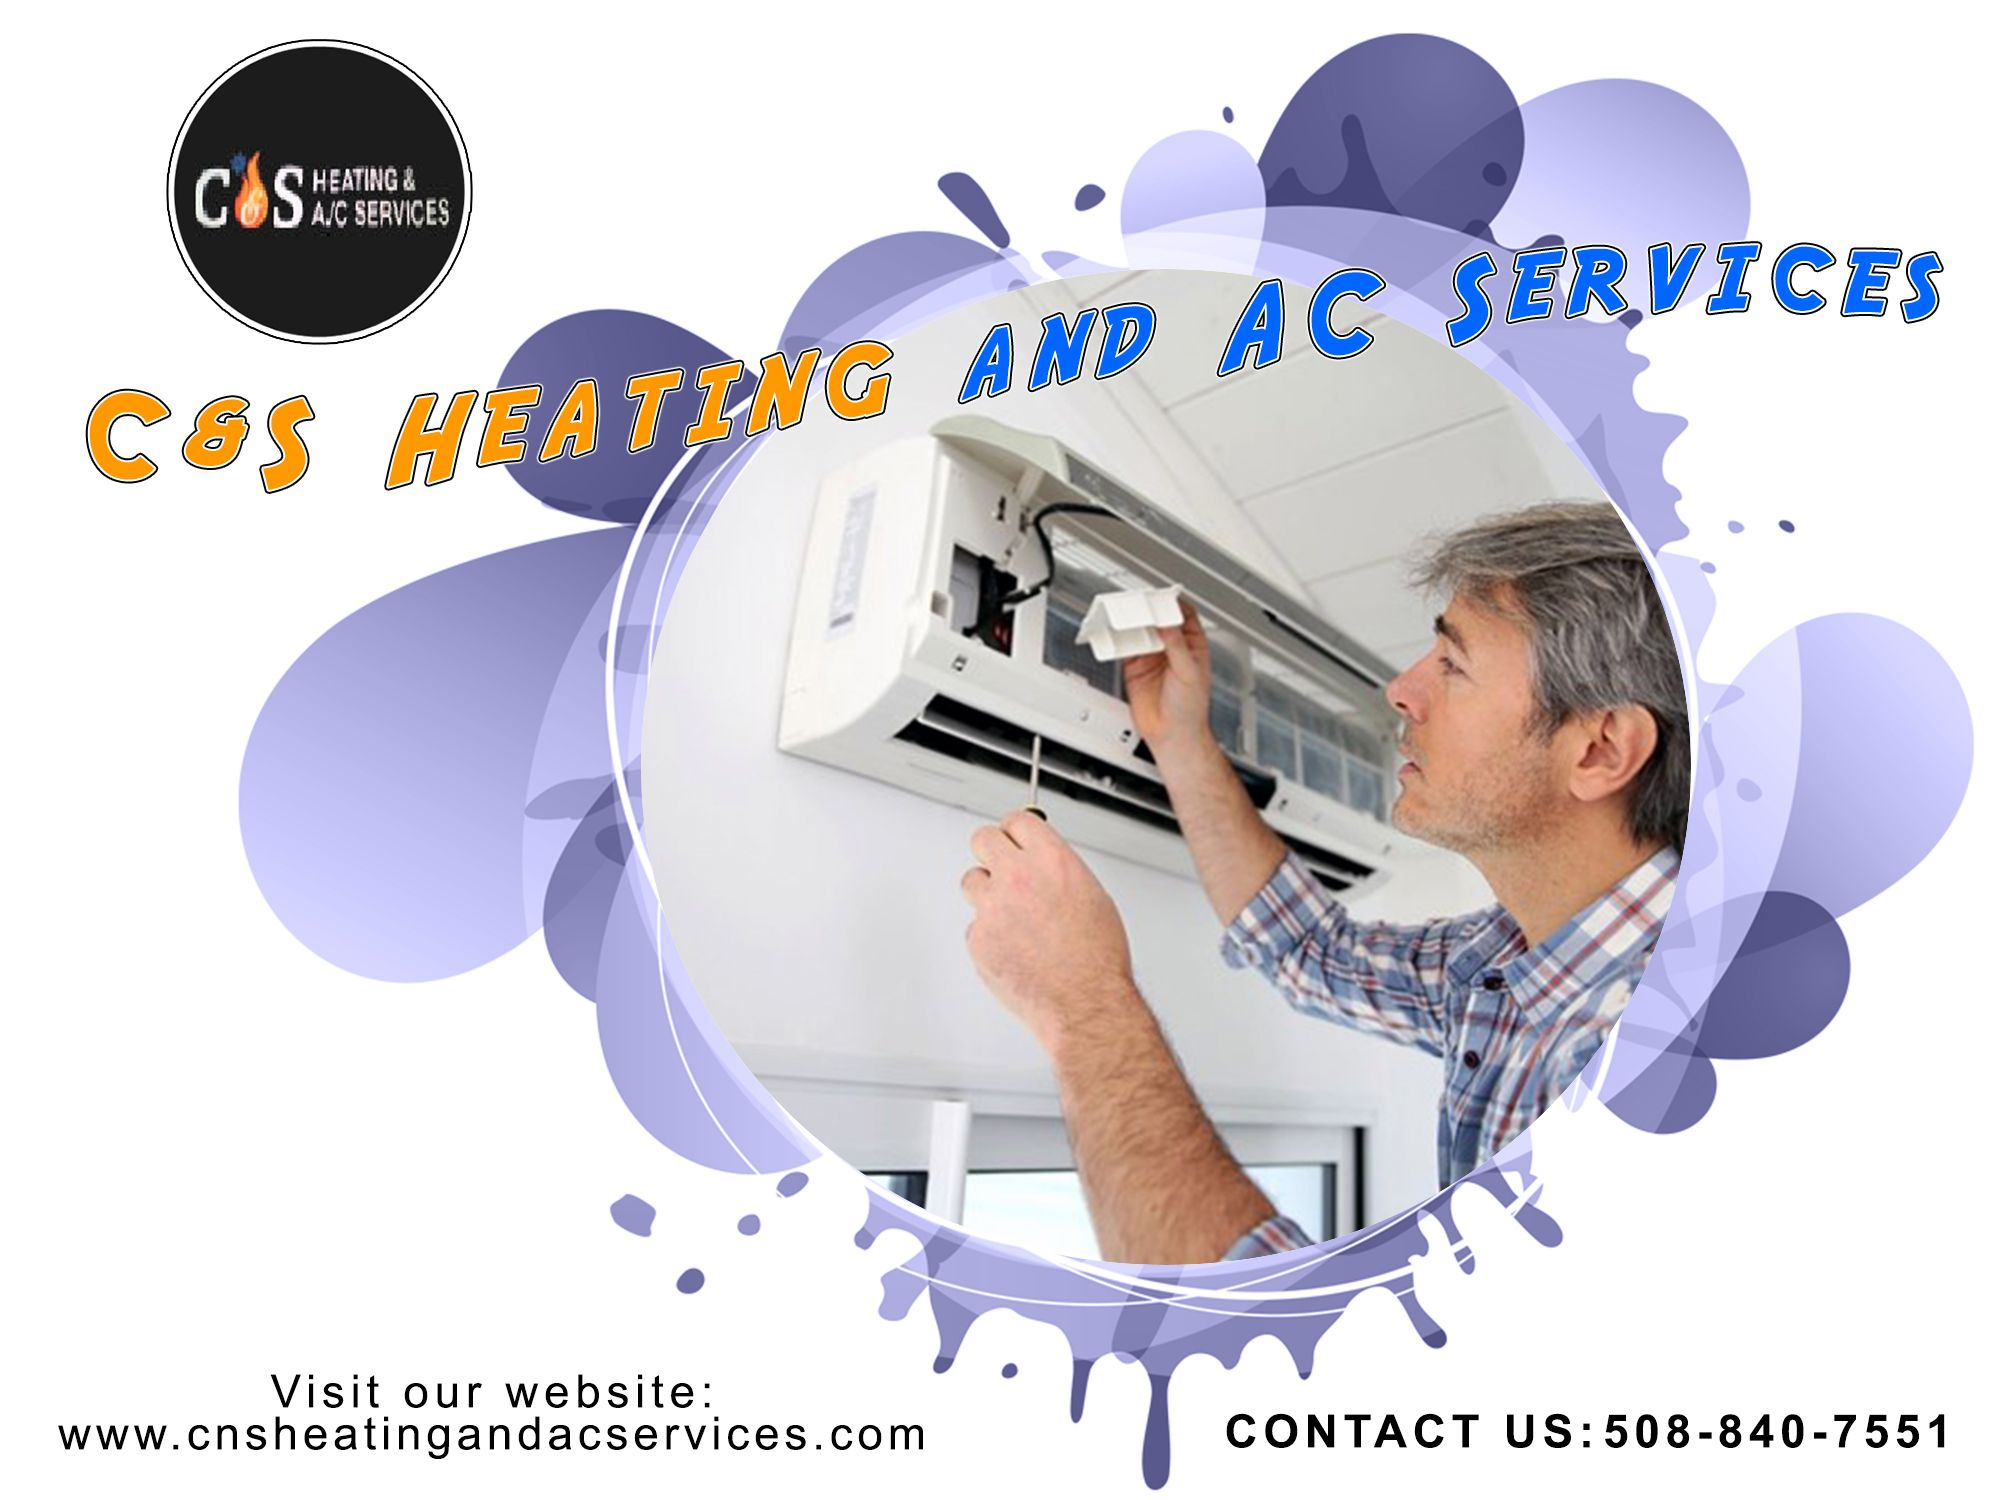 At C&S Heating and AC Services, we always strive to